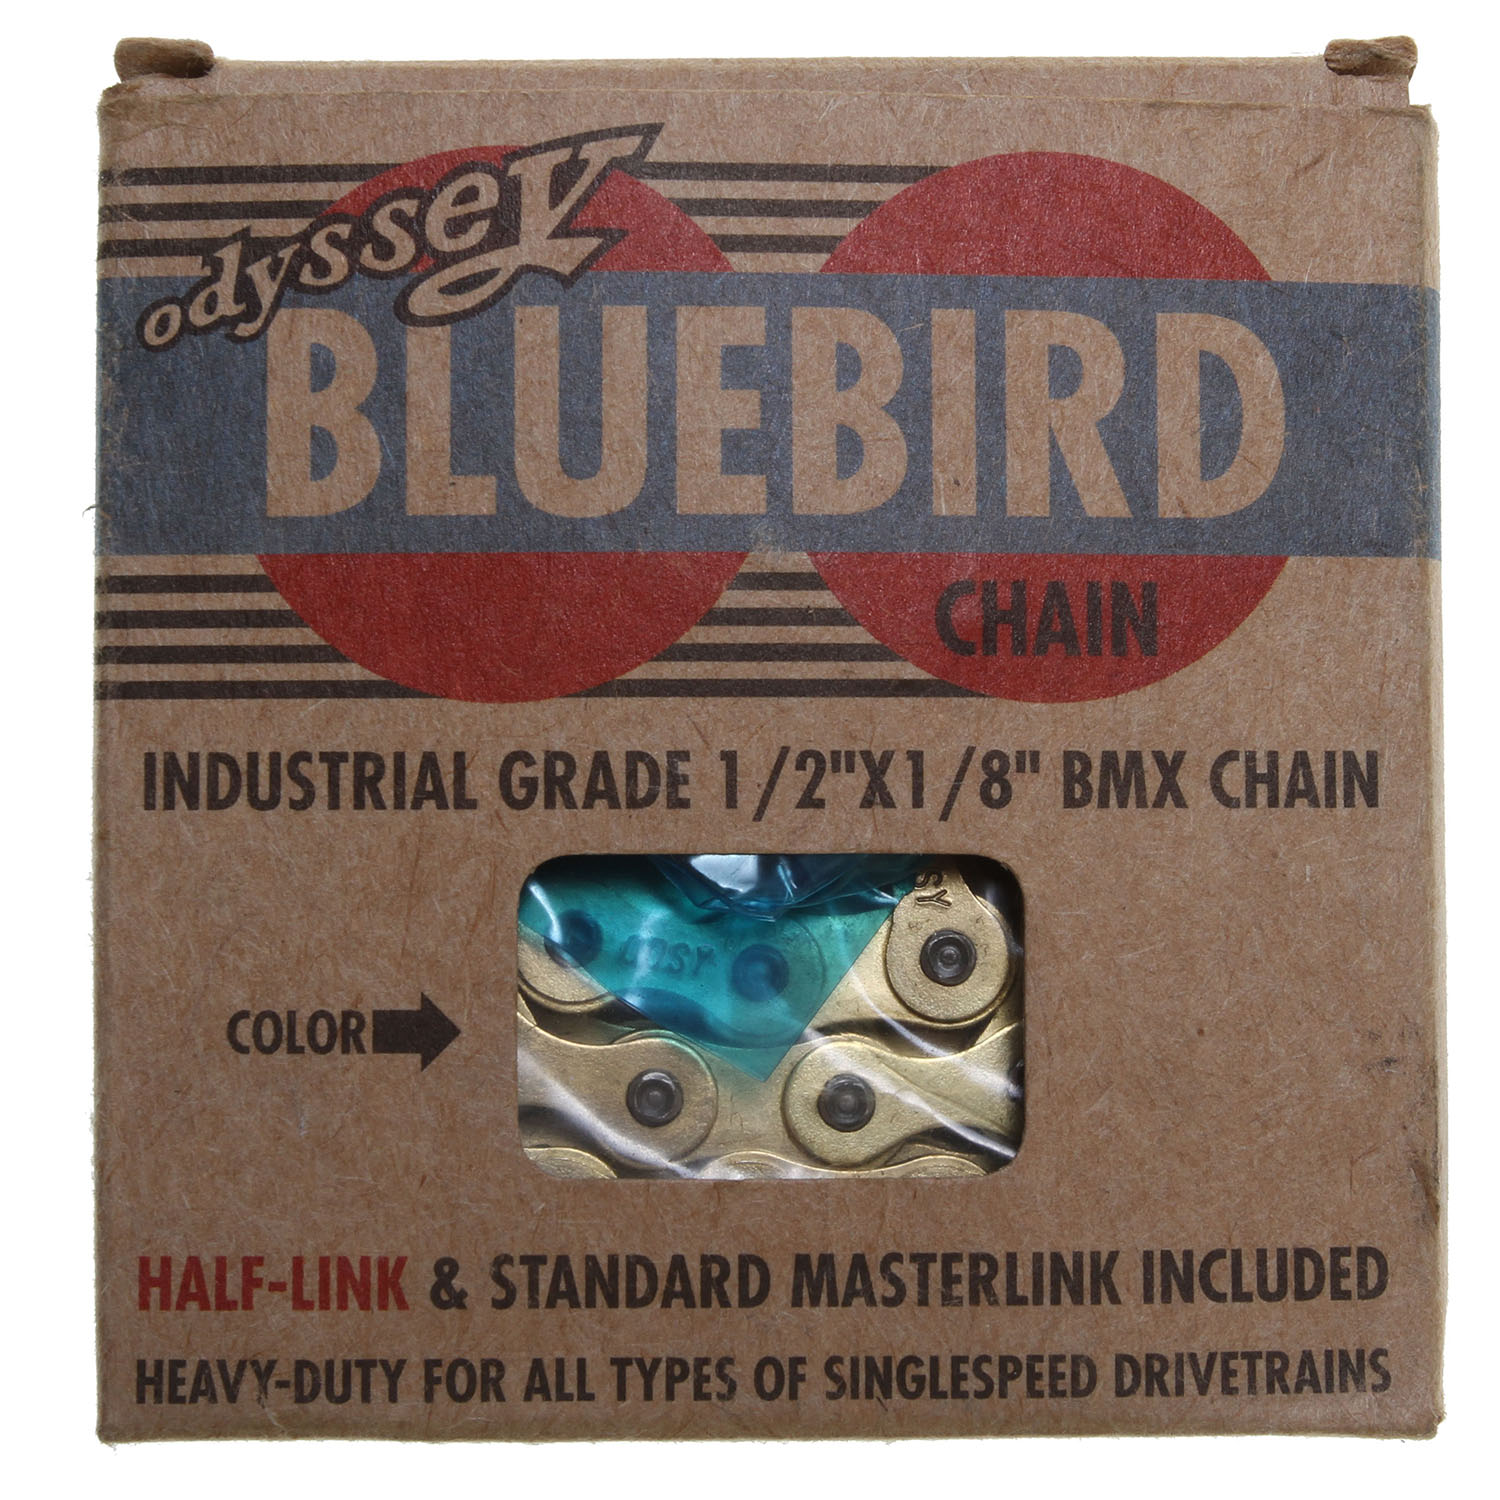 "BMX The Bluebird Chain uses a standard KMC 510-HX link and plate configuration and includes a KMC Pintle half-link thata (TM)s pre-installed at the factory. The idea of the pre-installed half link is simple. If you need the half link, than shorten the chain at the other end. If you dona (TM)t, than shorten at the half link end. The Bluebird is available now in black, gold and silver.Key Features of the Odyssey Bluebird Bike Chain Black 1/8"": Chain Compatibility: 1/2"" x 1/8"" Number of Speeds: Single Defined Color: Black Color: Black Width: 9.3 mm Wght/Dims: 1 lbs. 2.5 x 2.5 x .5 - $23.95"